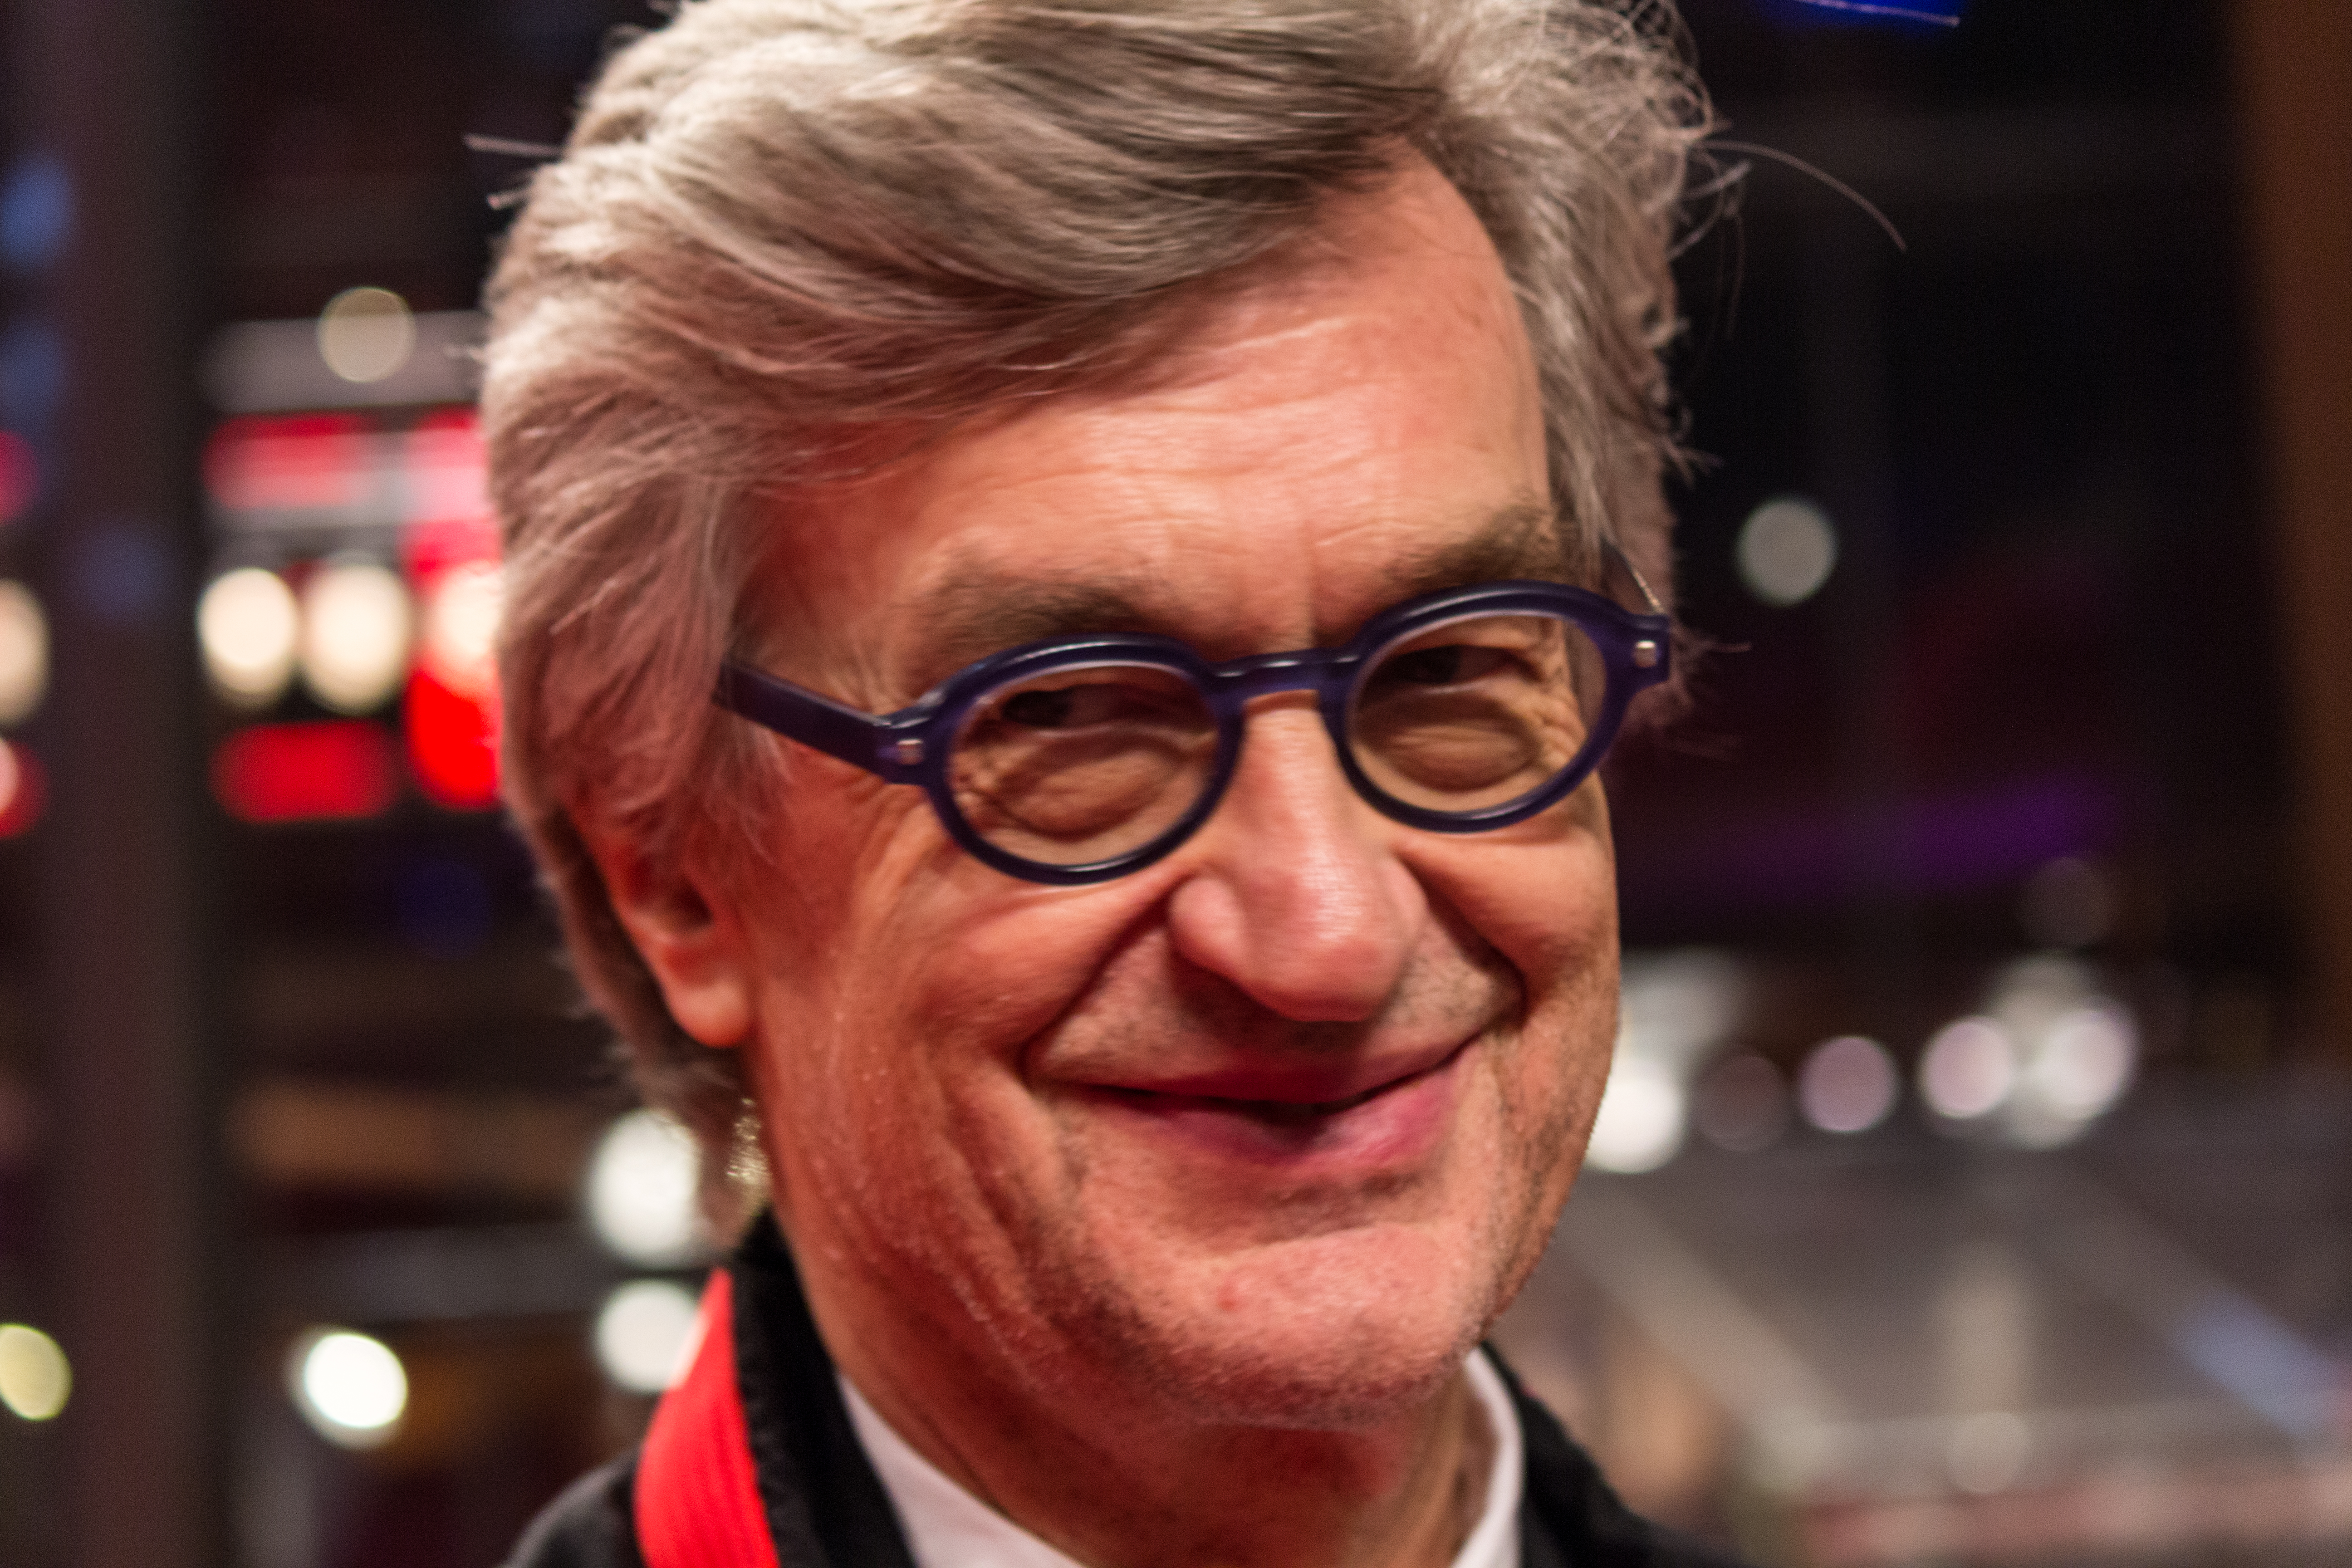 Depiction of Wim Wenders